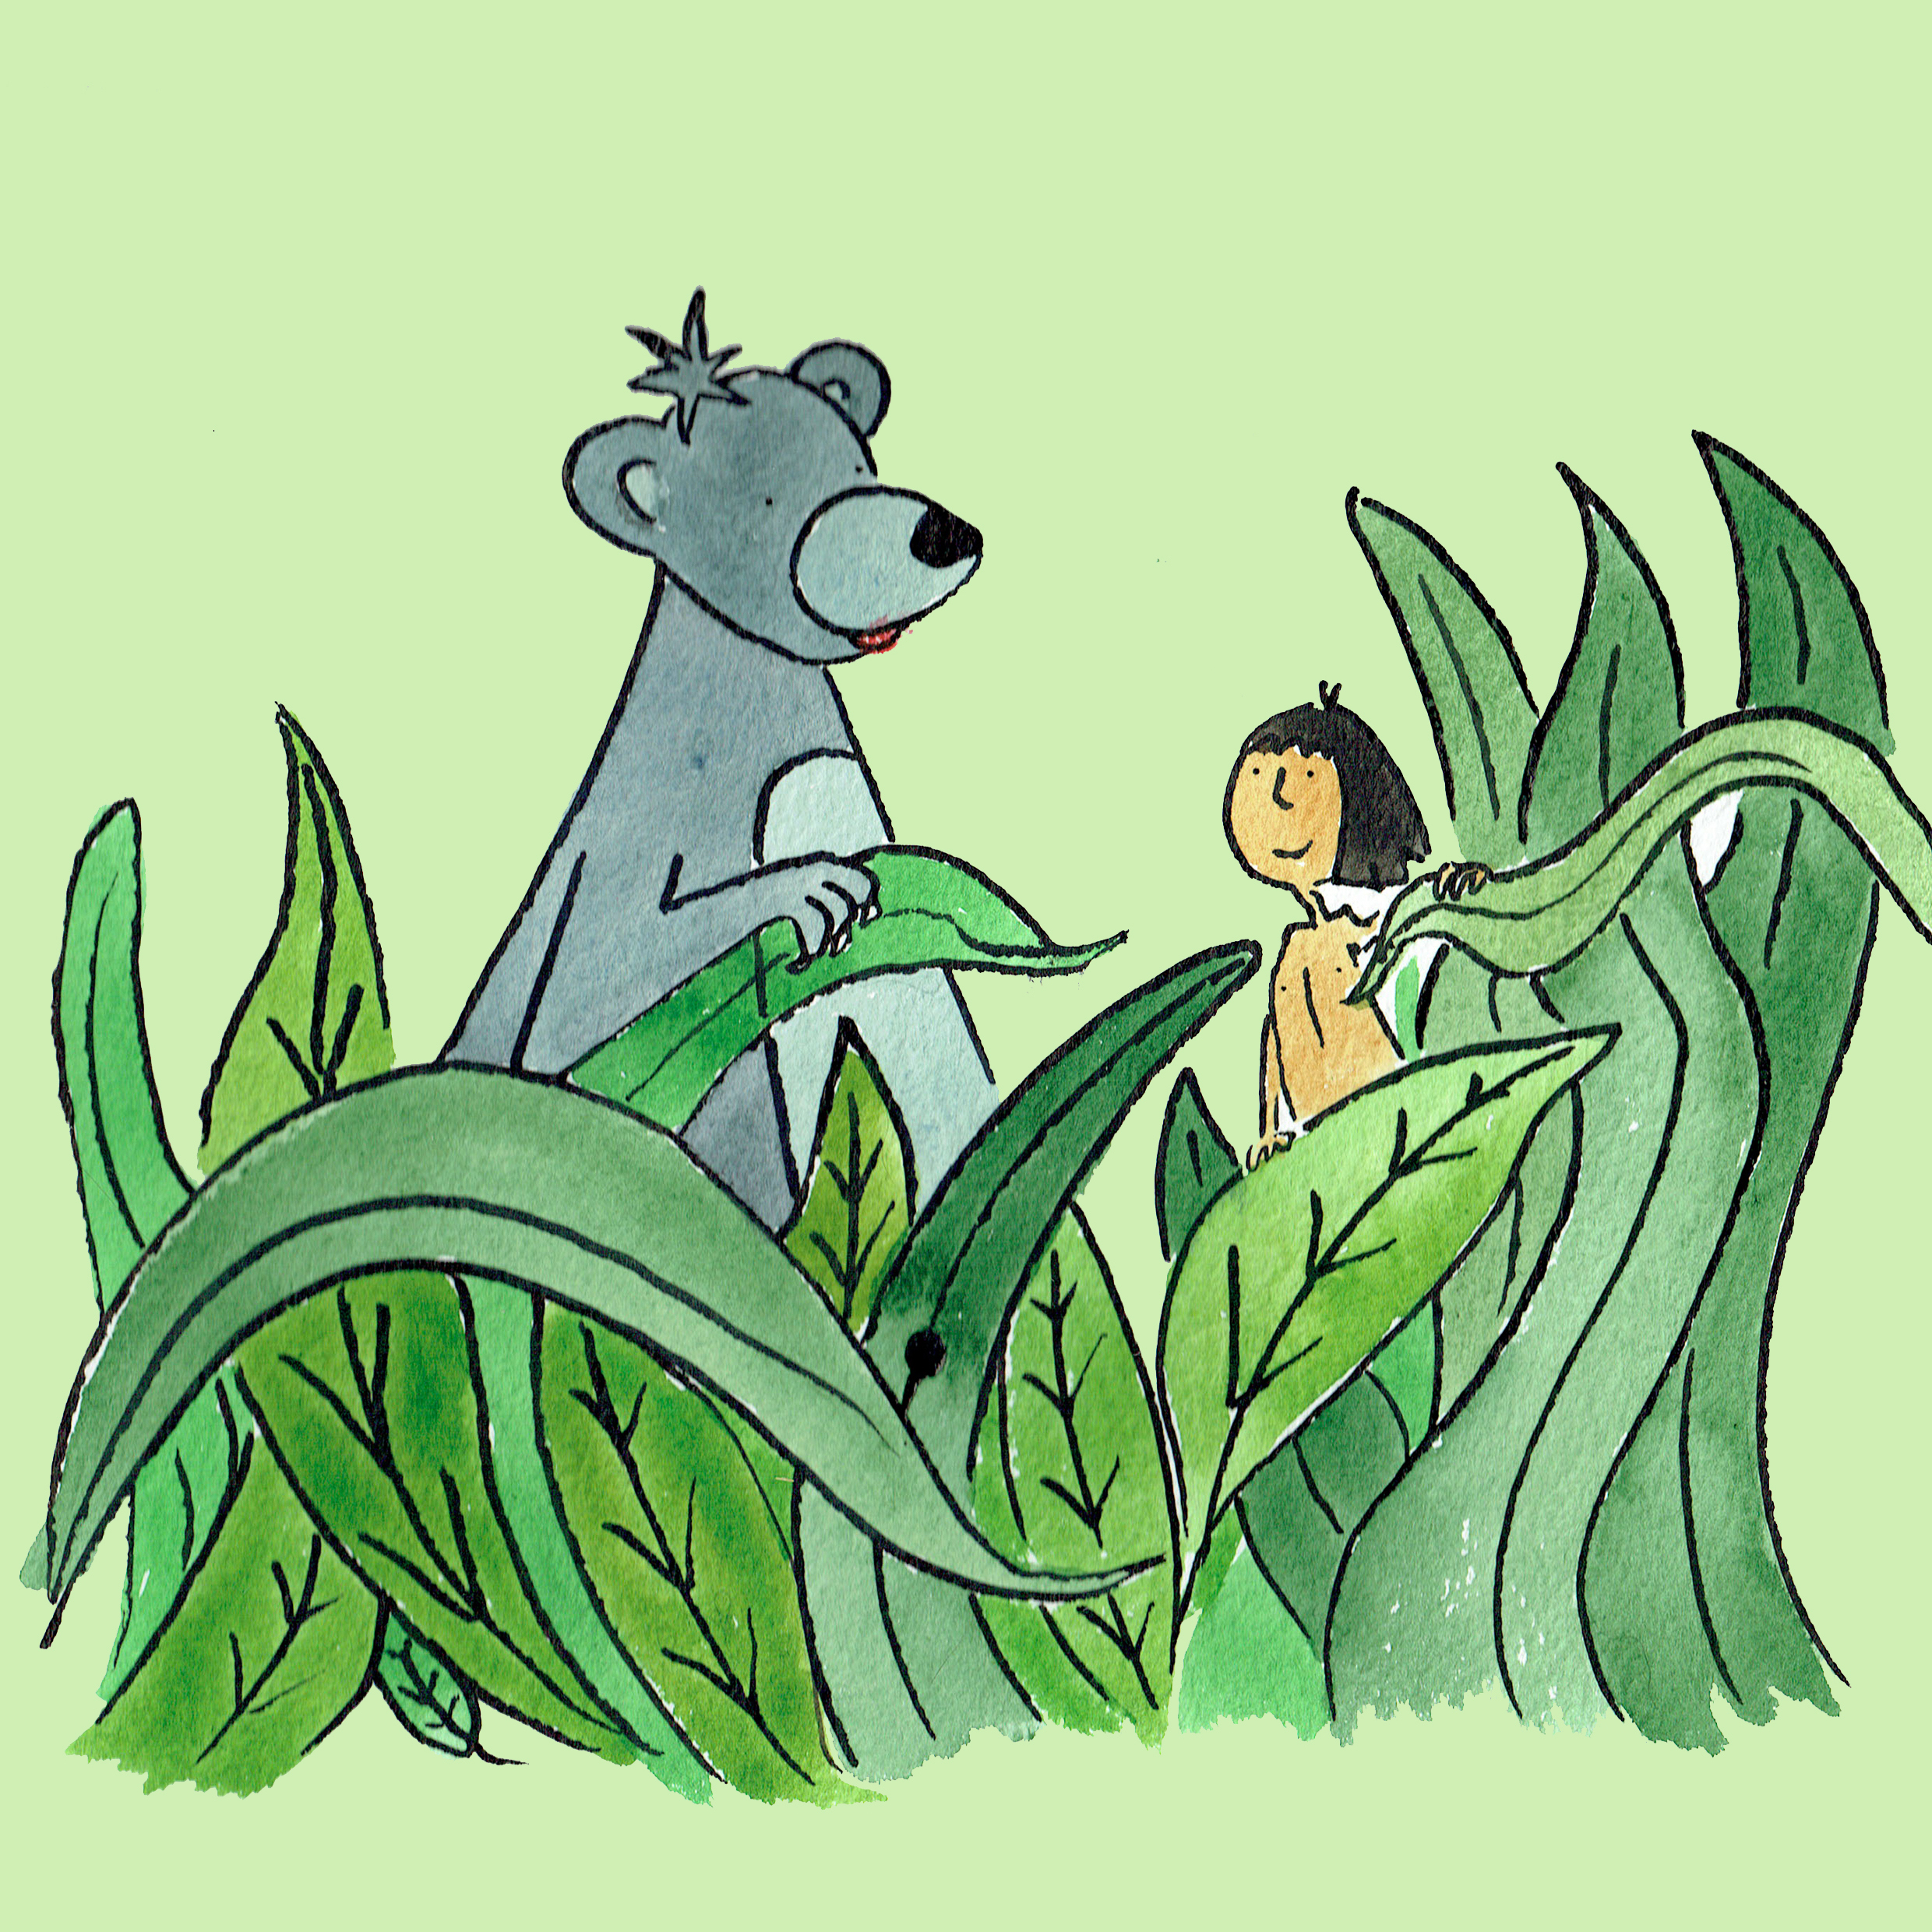 Musical tale of The Jungle Book